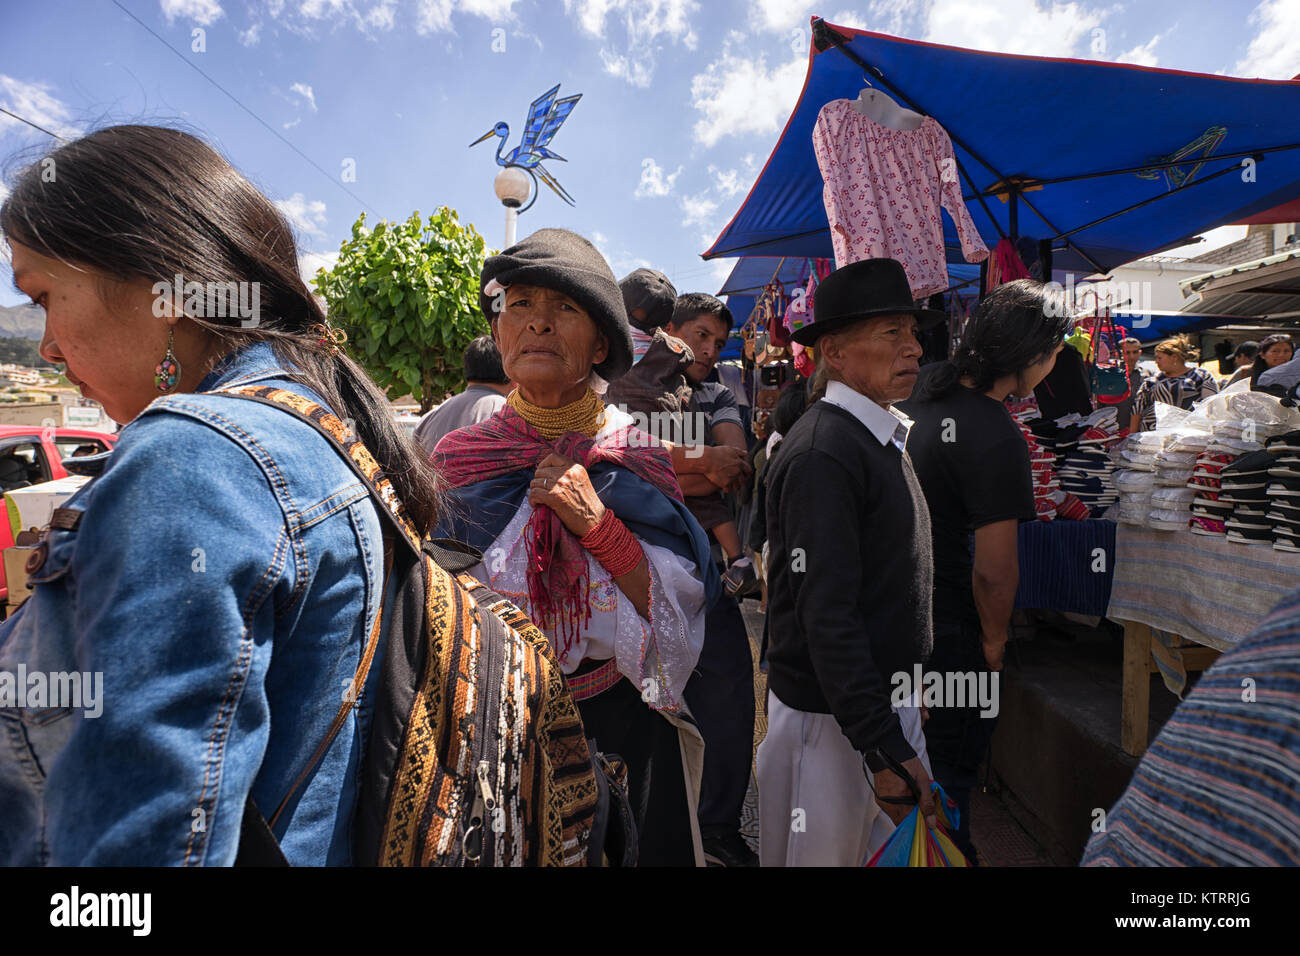 Otavalo, Ecuador-December 23, 2017: people in the Saturday market of the indigenous town - Stock Image